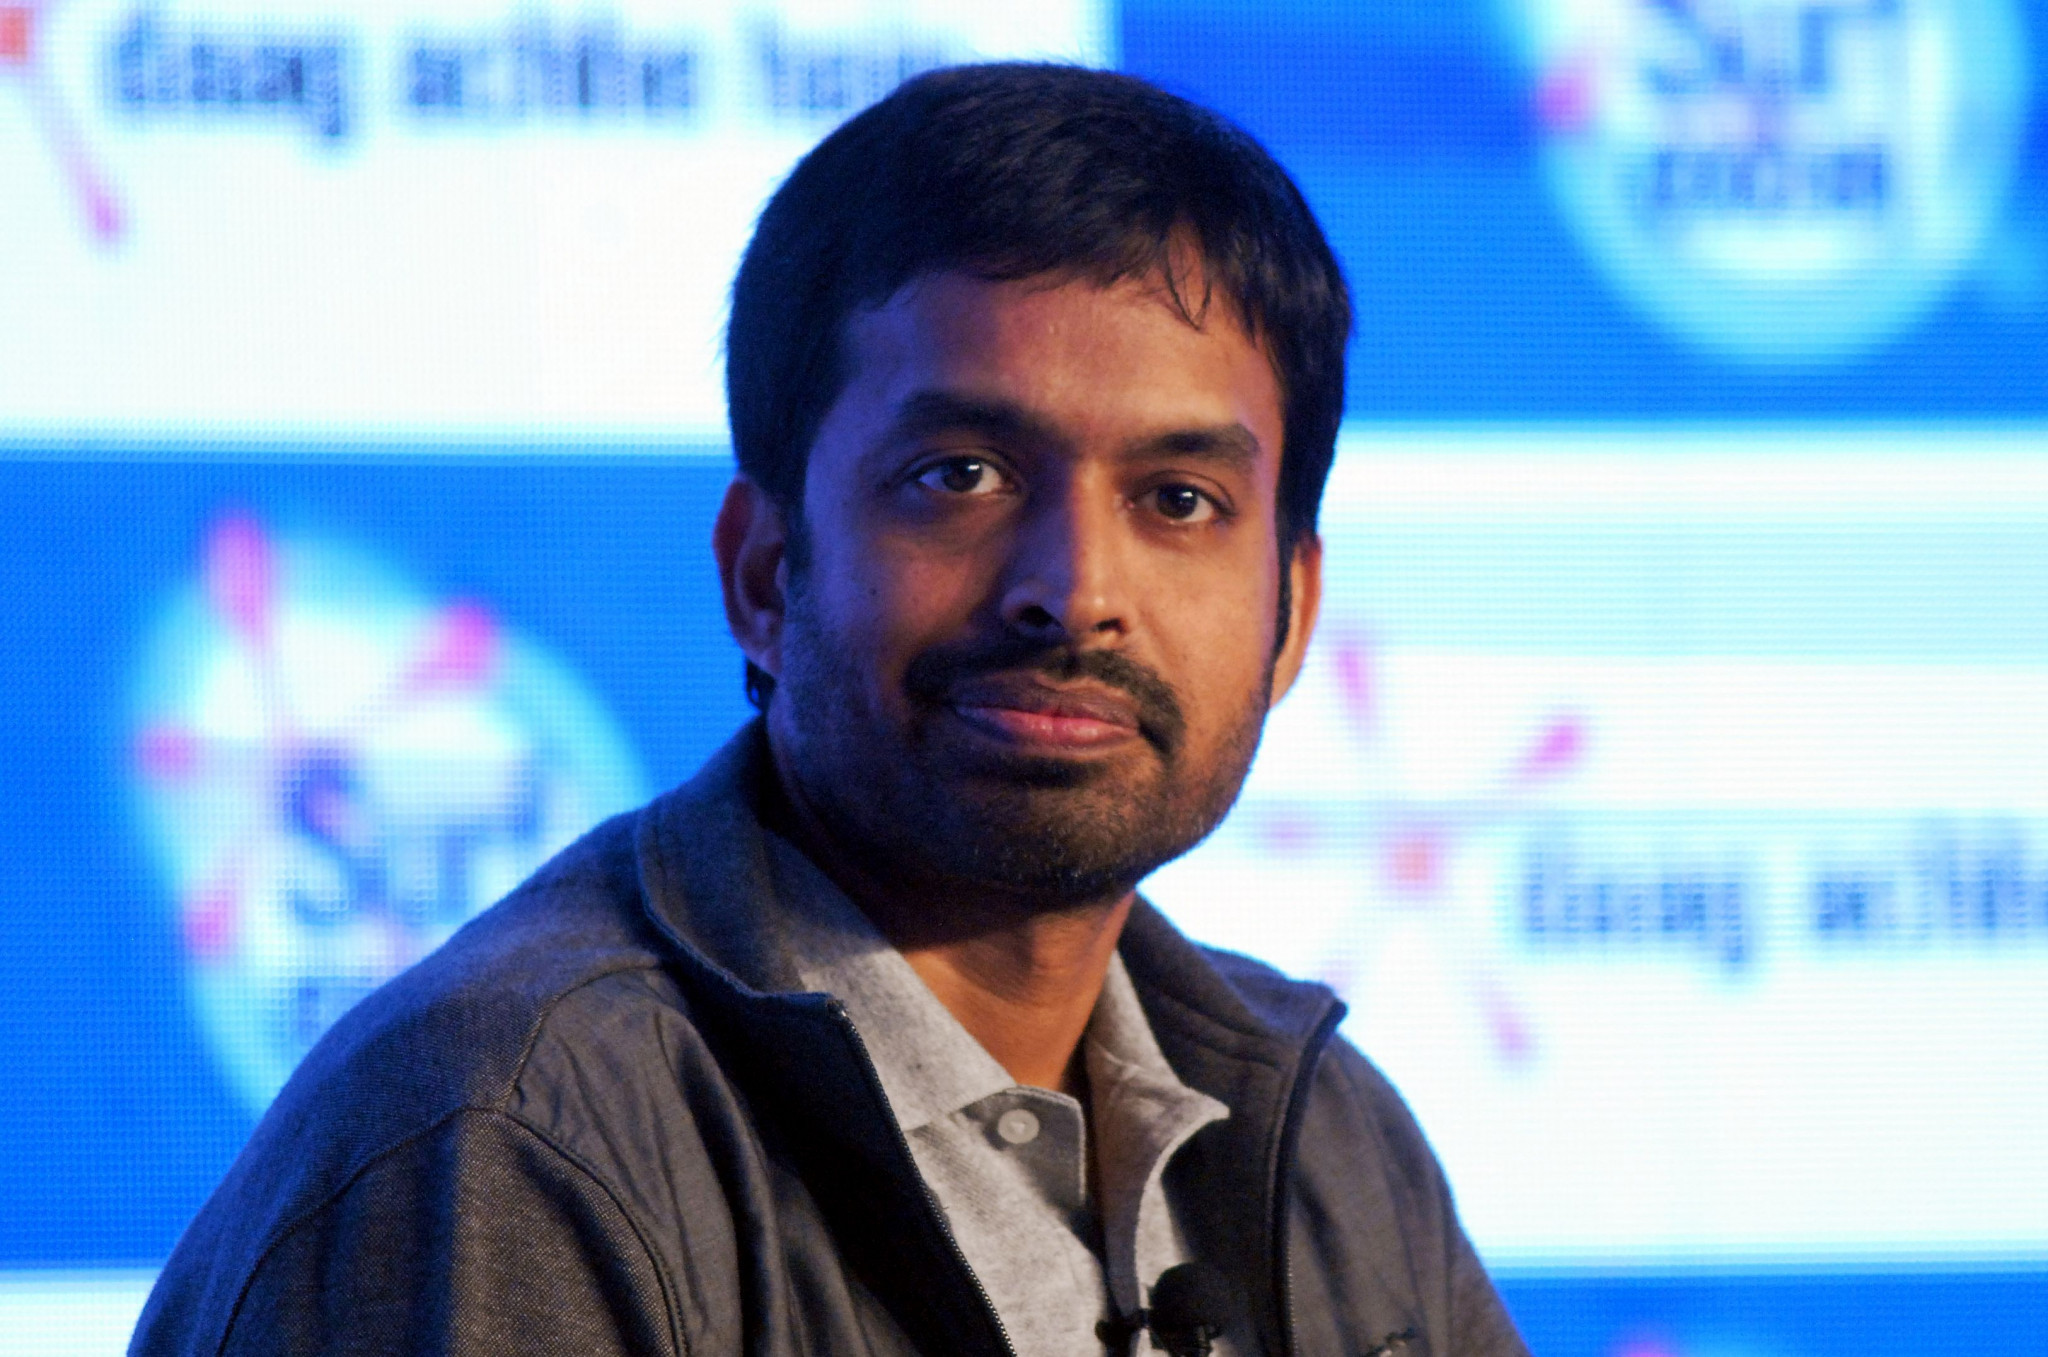 Pullela Gopichand became the first Indian coach to receive an honourable mention from the International Olympic Committee ©Getty Images